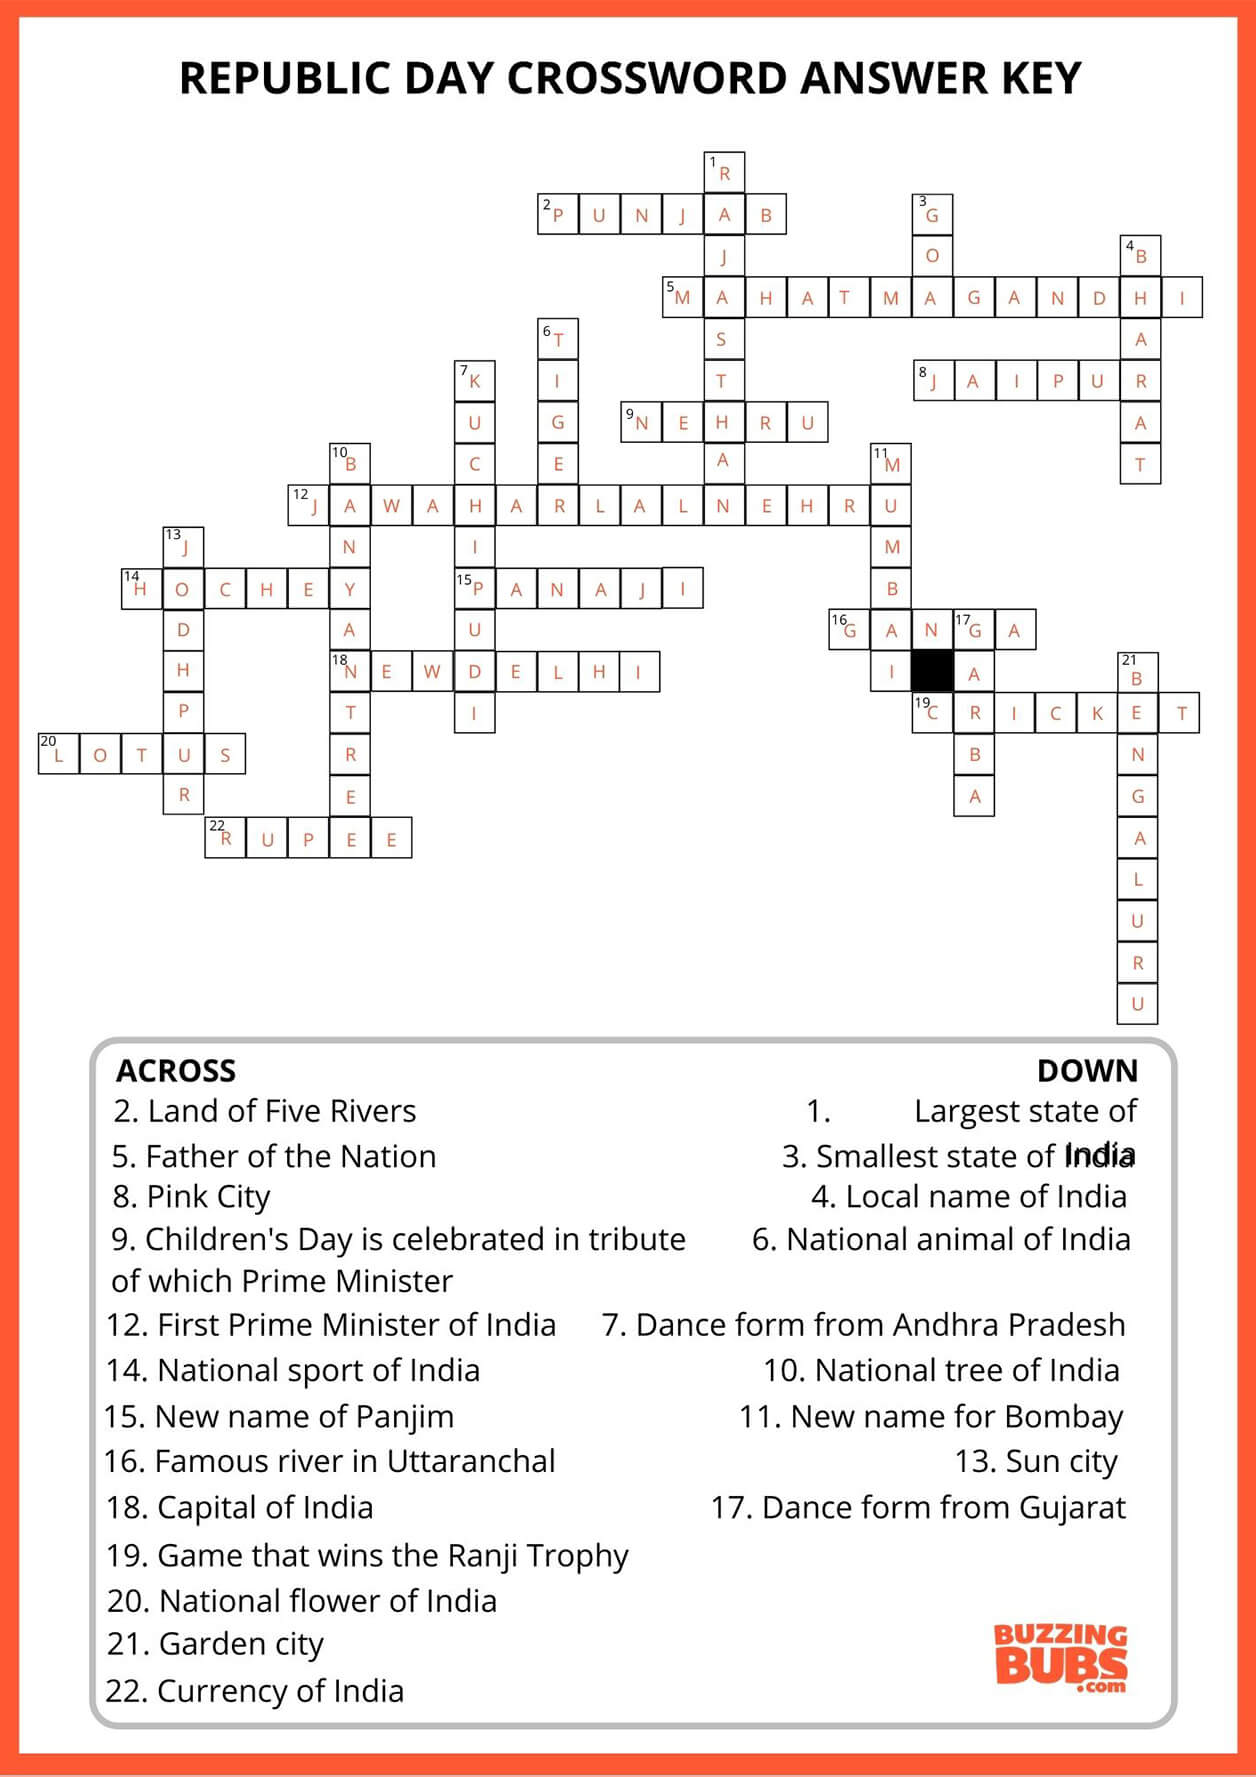 BB_republic_day_crossword02 Cover Image